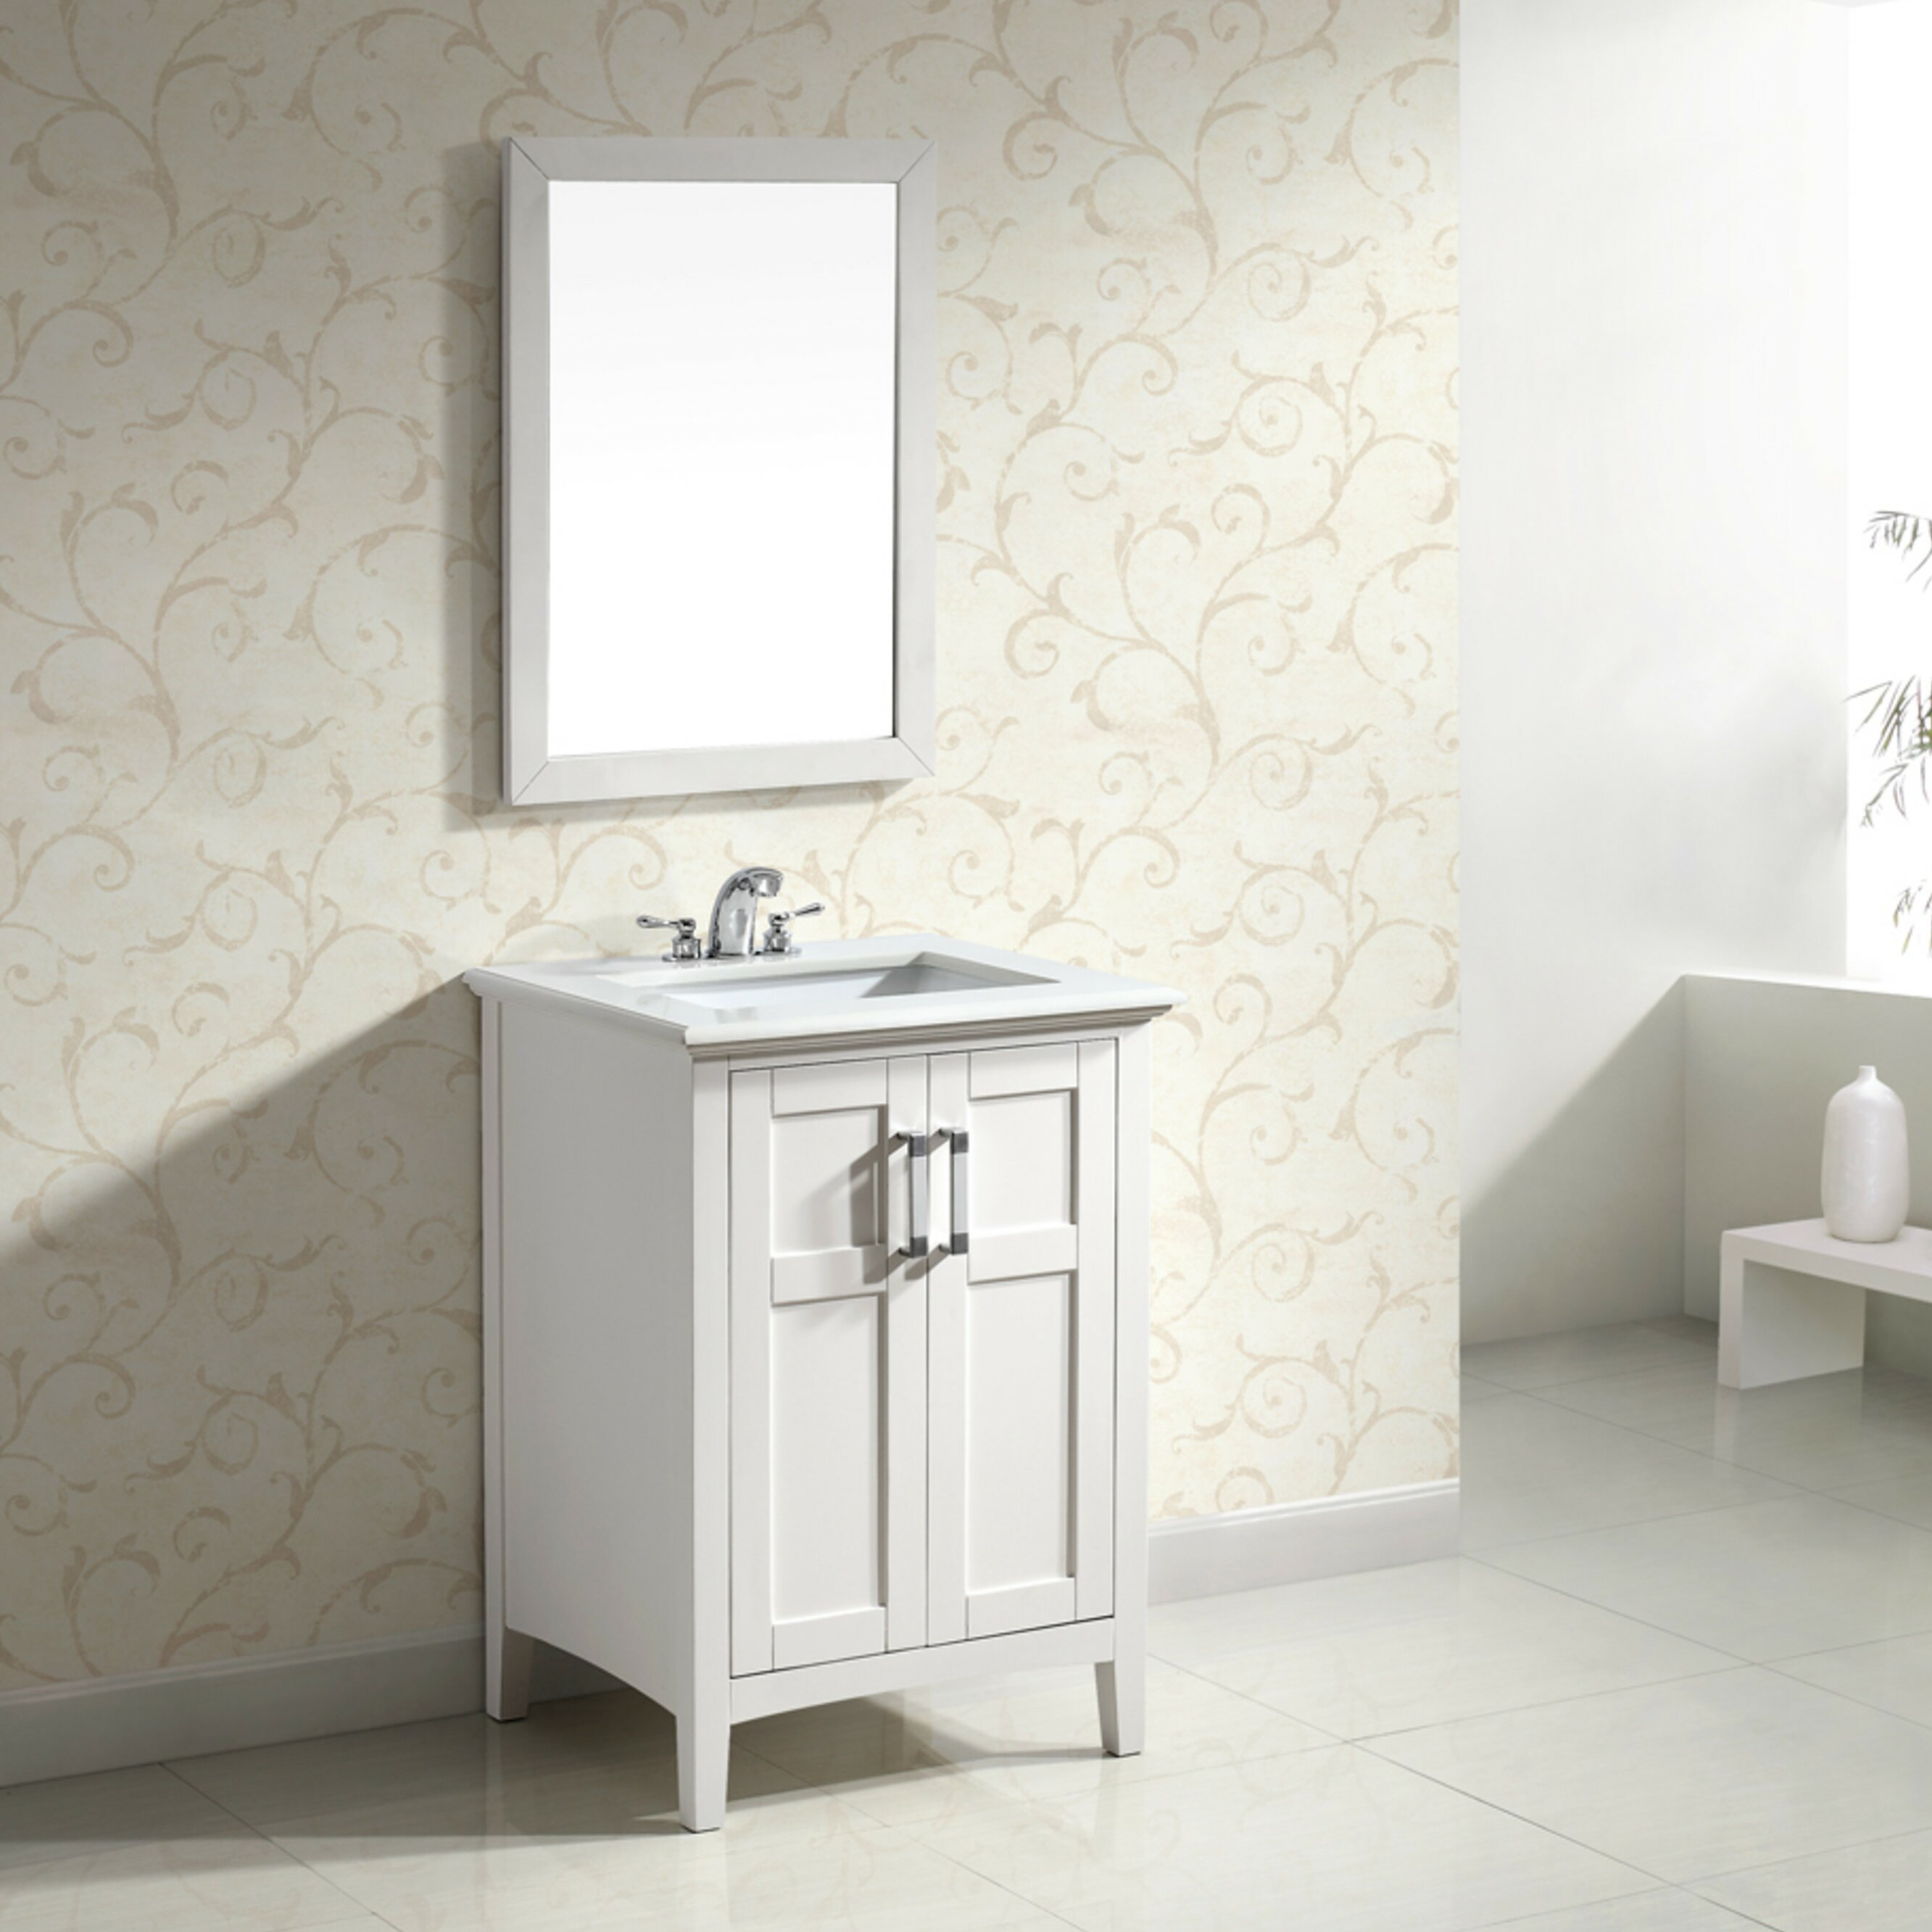 Bathroom single vanity - Simpli Home Winston 24 Quot Single Bathroom Vanity Set